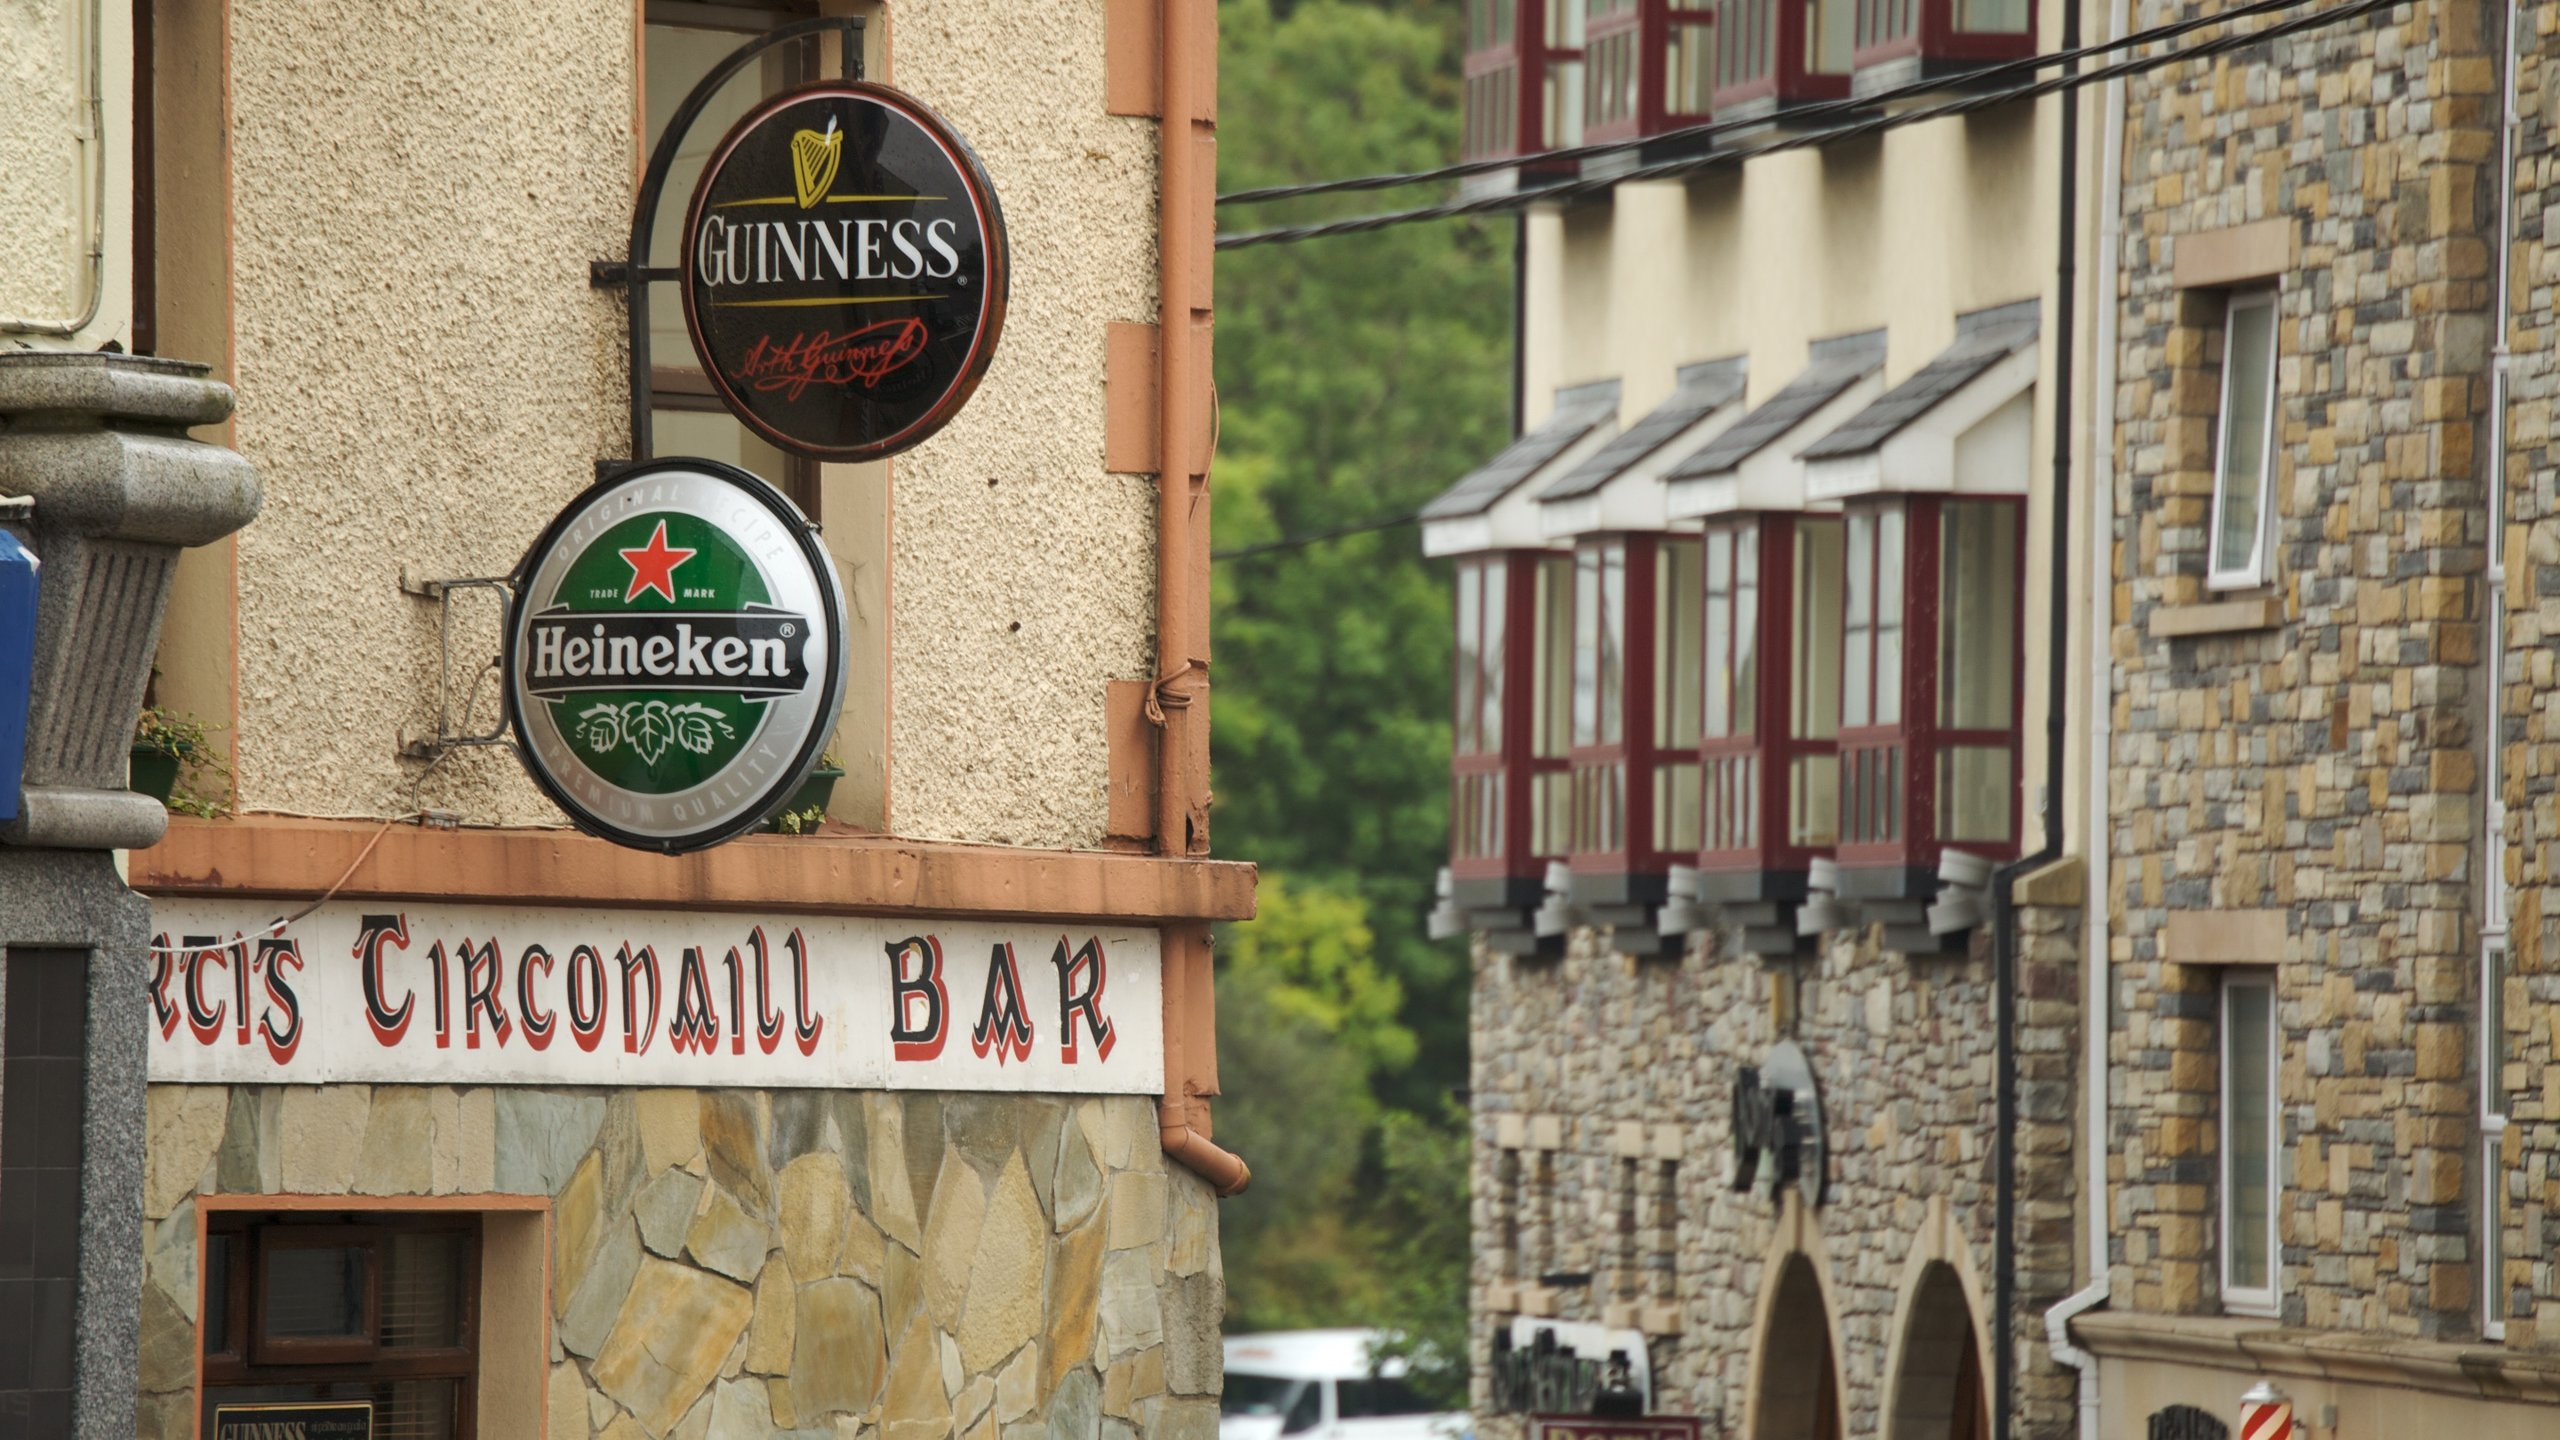 Donegal, County Donegal, Ireland